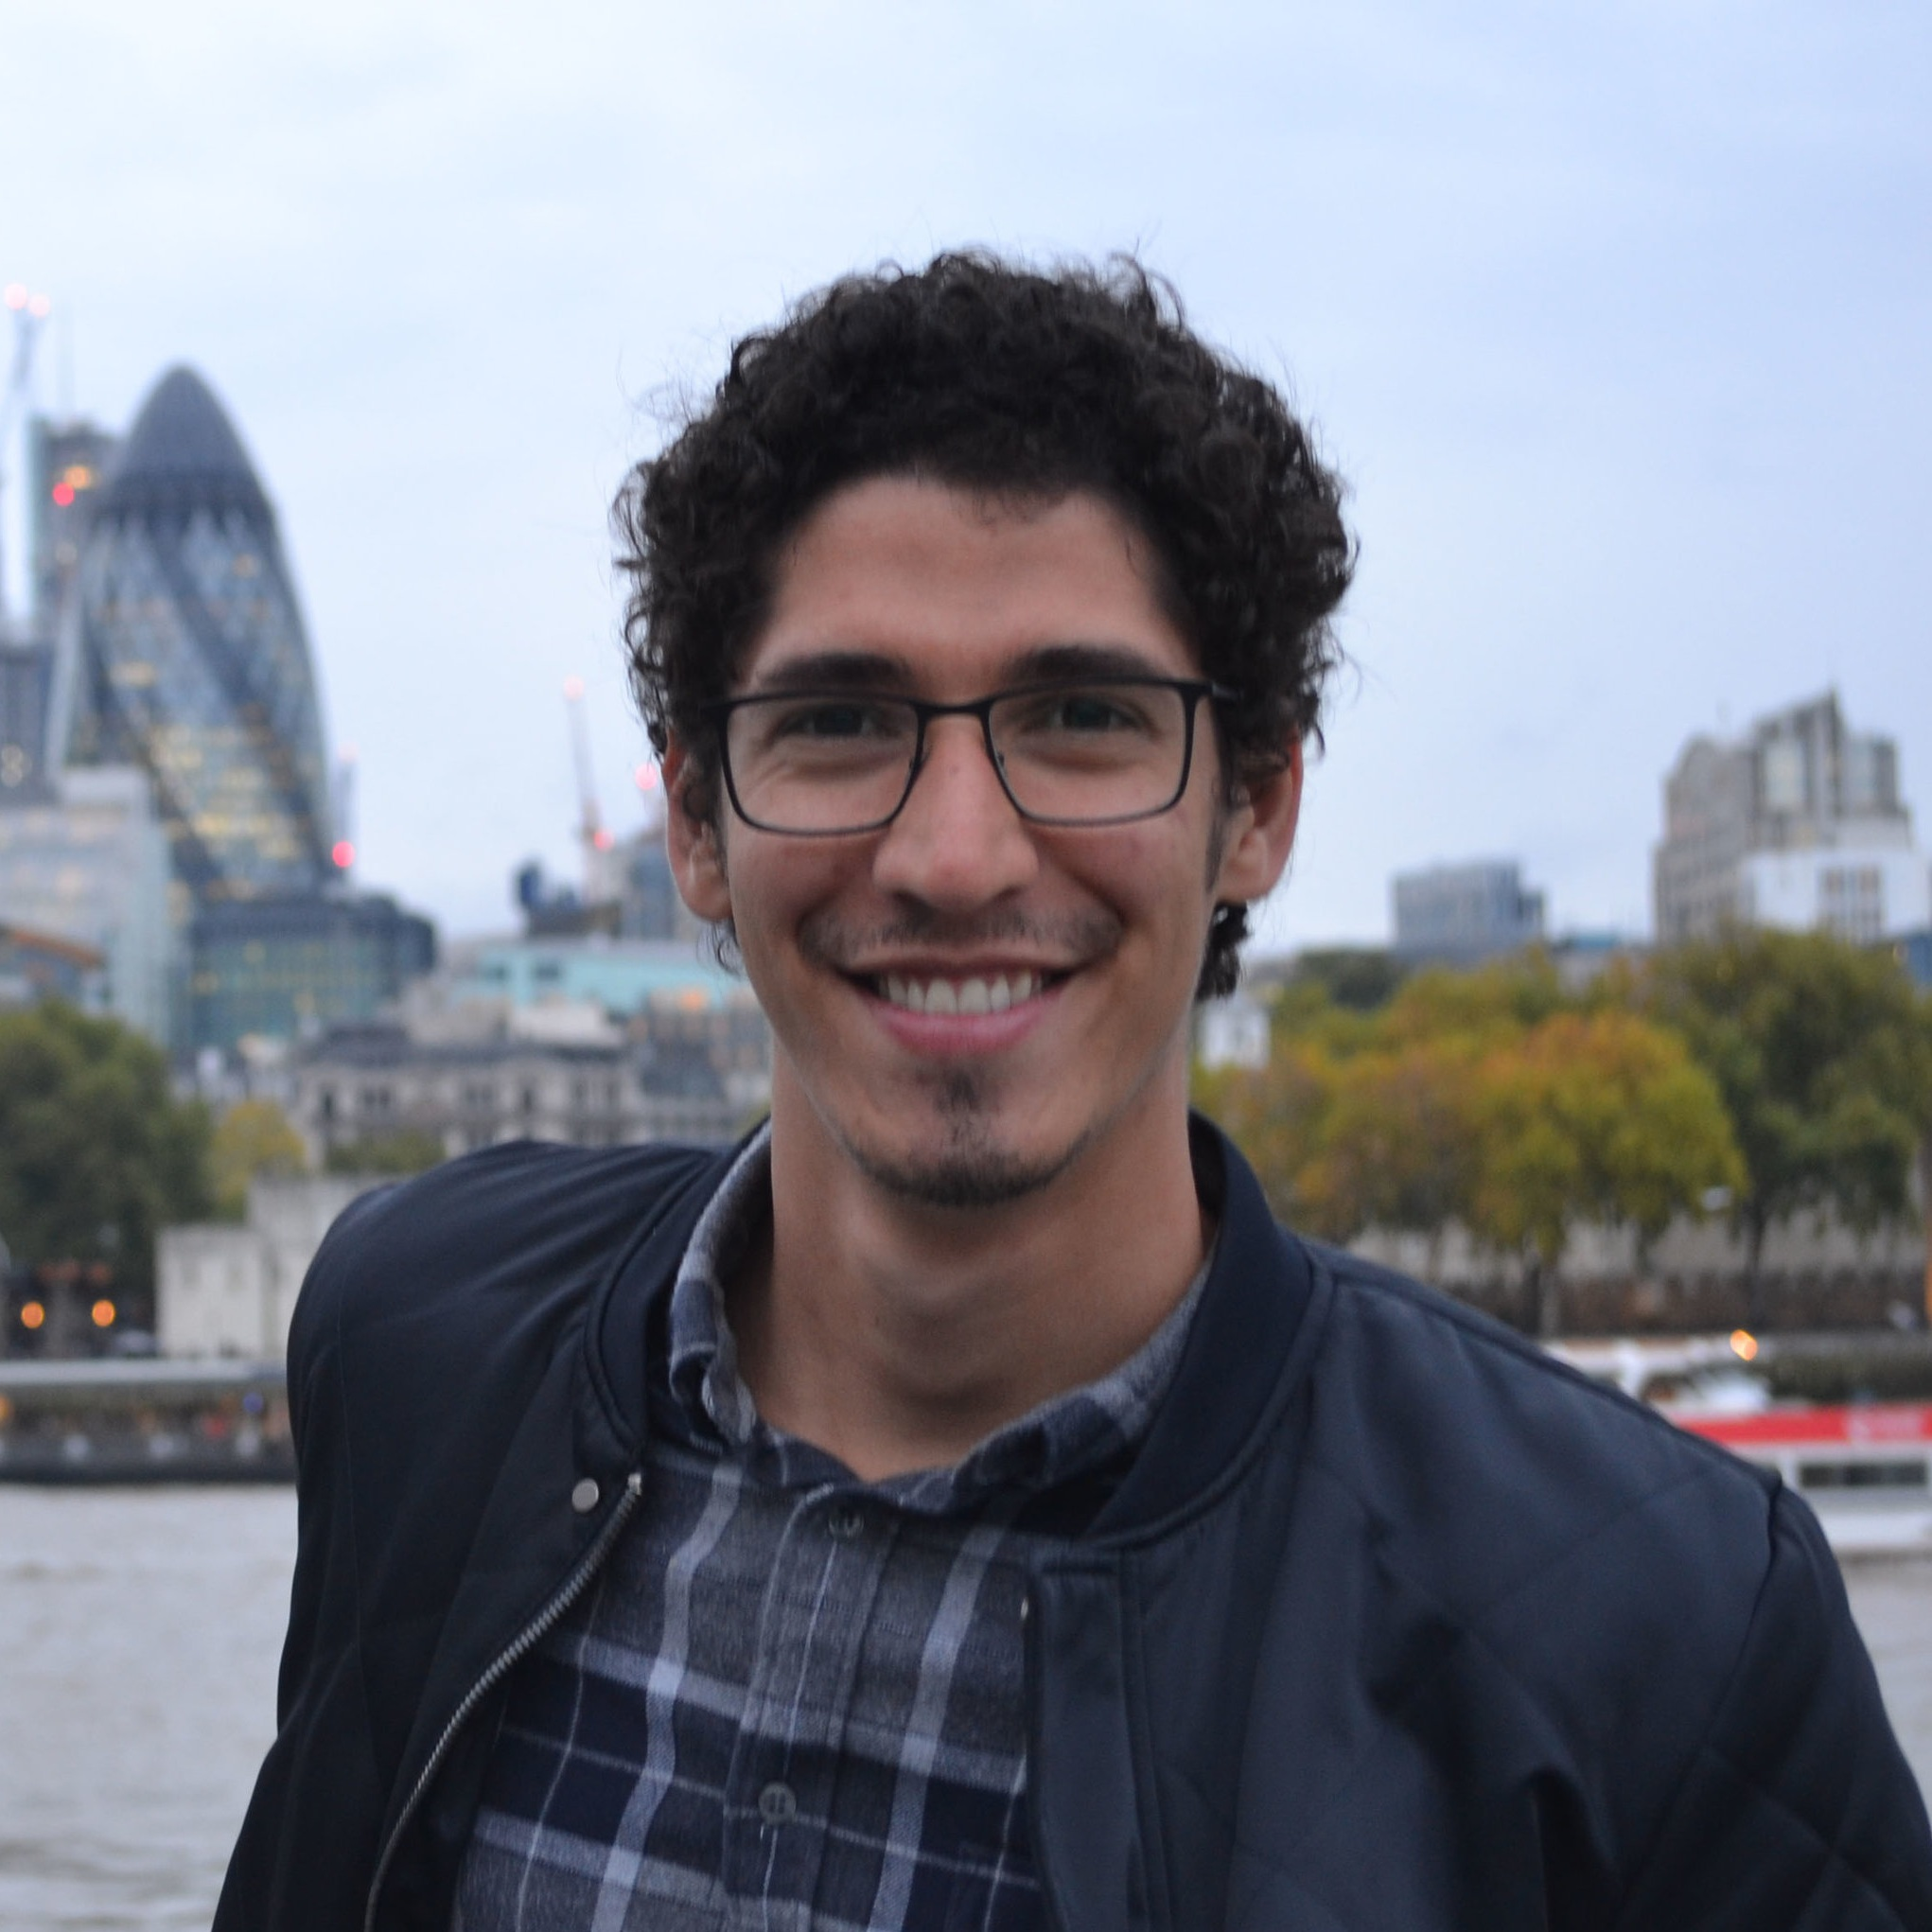 I am Brazilian and undertook my DPhil (PhD) studies at the University of Oxford (UK) in Jan Rehwinkel & Christian Eggeling's labs exploring innate immune cytosolic receptors that can sense viral RNA presence, such as RIG-I-like receptors.  In the Harris lab, I am exploring the human immune responses to arboviruses. In one of my projects, I am investigating the correlates of immune protection during the natural course of dengue virus infection using our pediatric cohort in Nicaragua. My interests also include public health-related activities, such as research capacity building in developing countries.  Outside the lab, I enjoy hiking, biking, volleyball, watching independent international movies, and learning new languages.